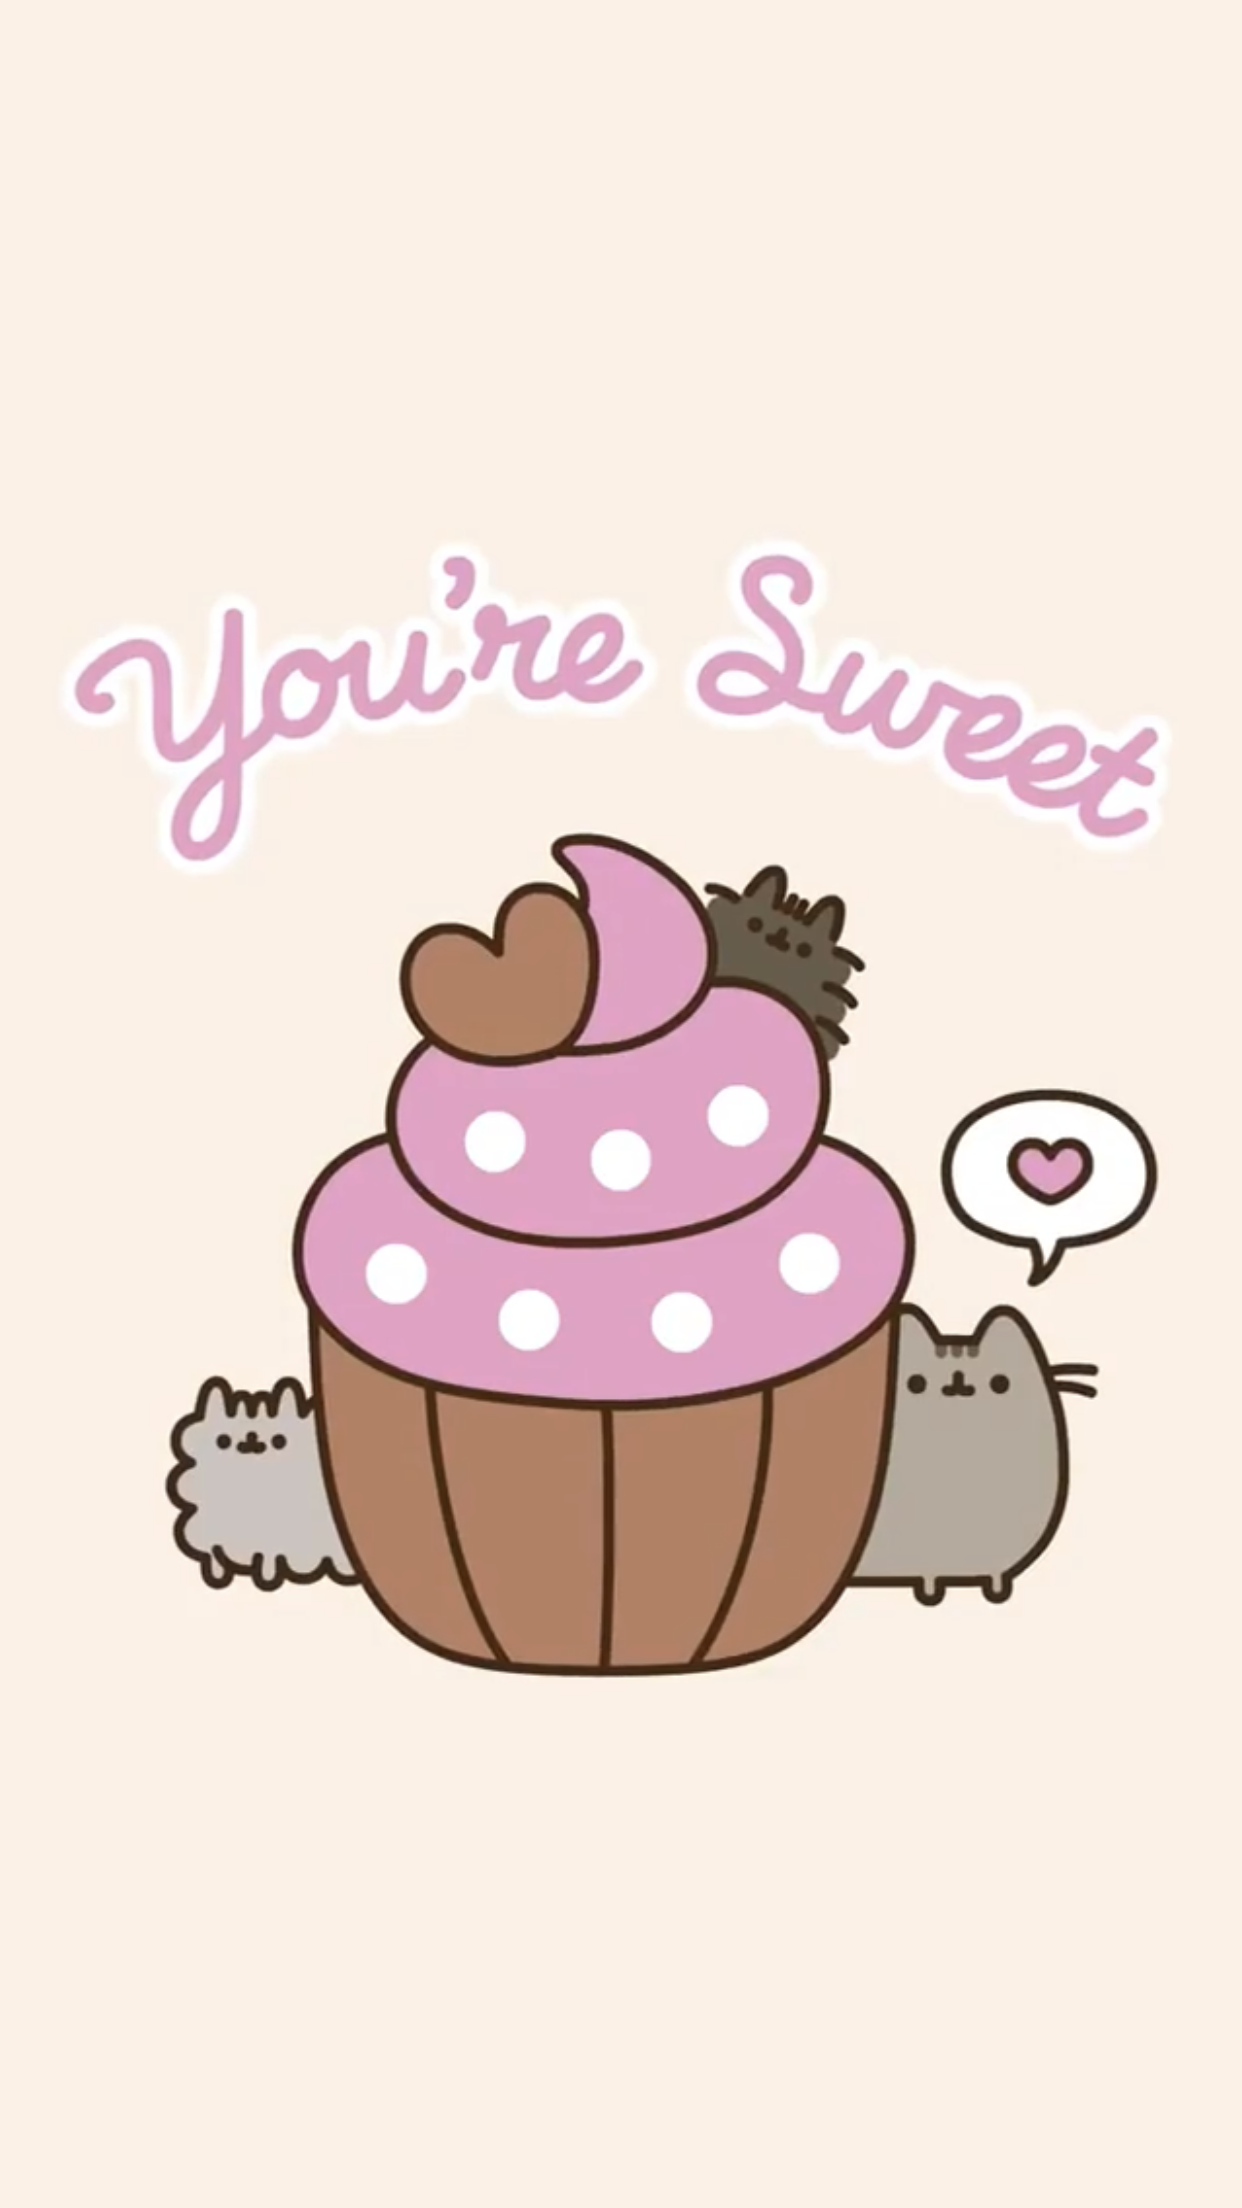 pusheen the cat iphone wallpaper valentine's day hearts